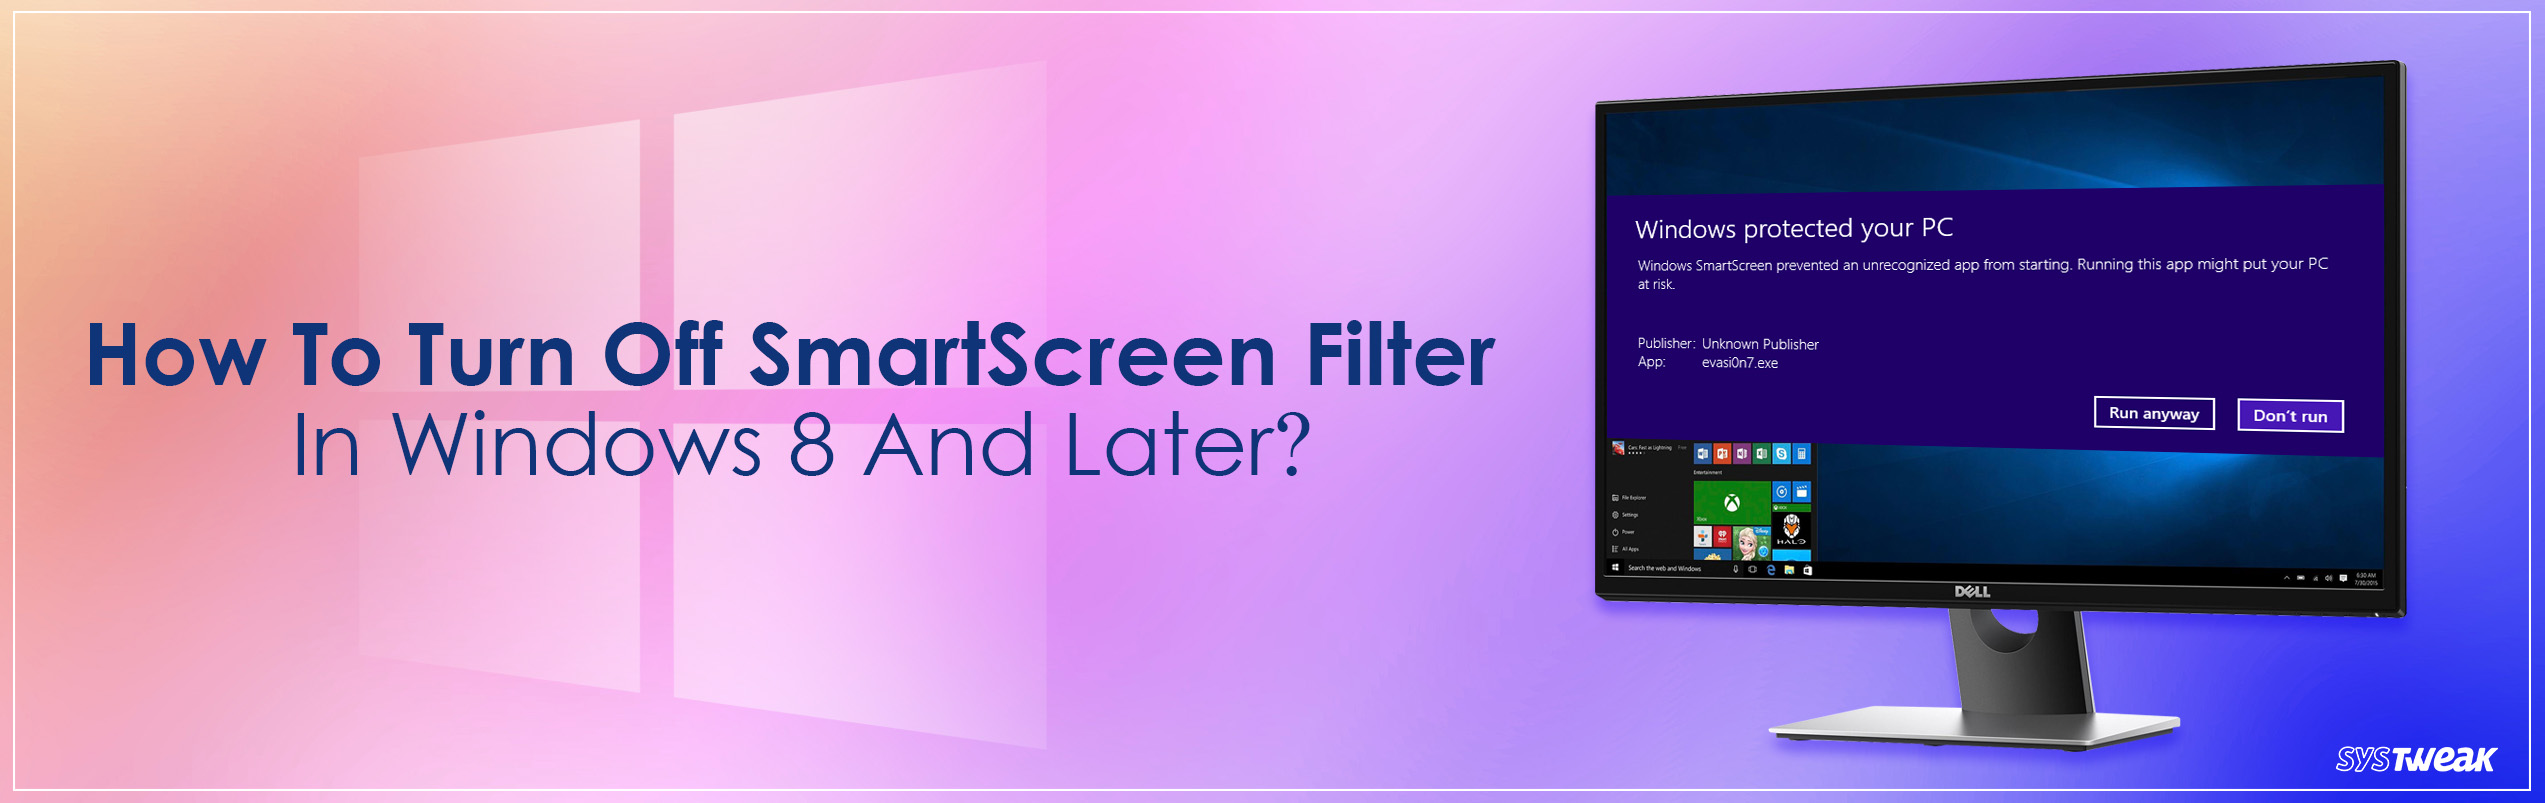 How to Turn off SmartScreen Filter in Windows 10 or 8?